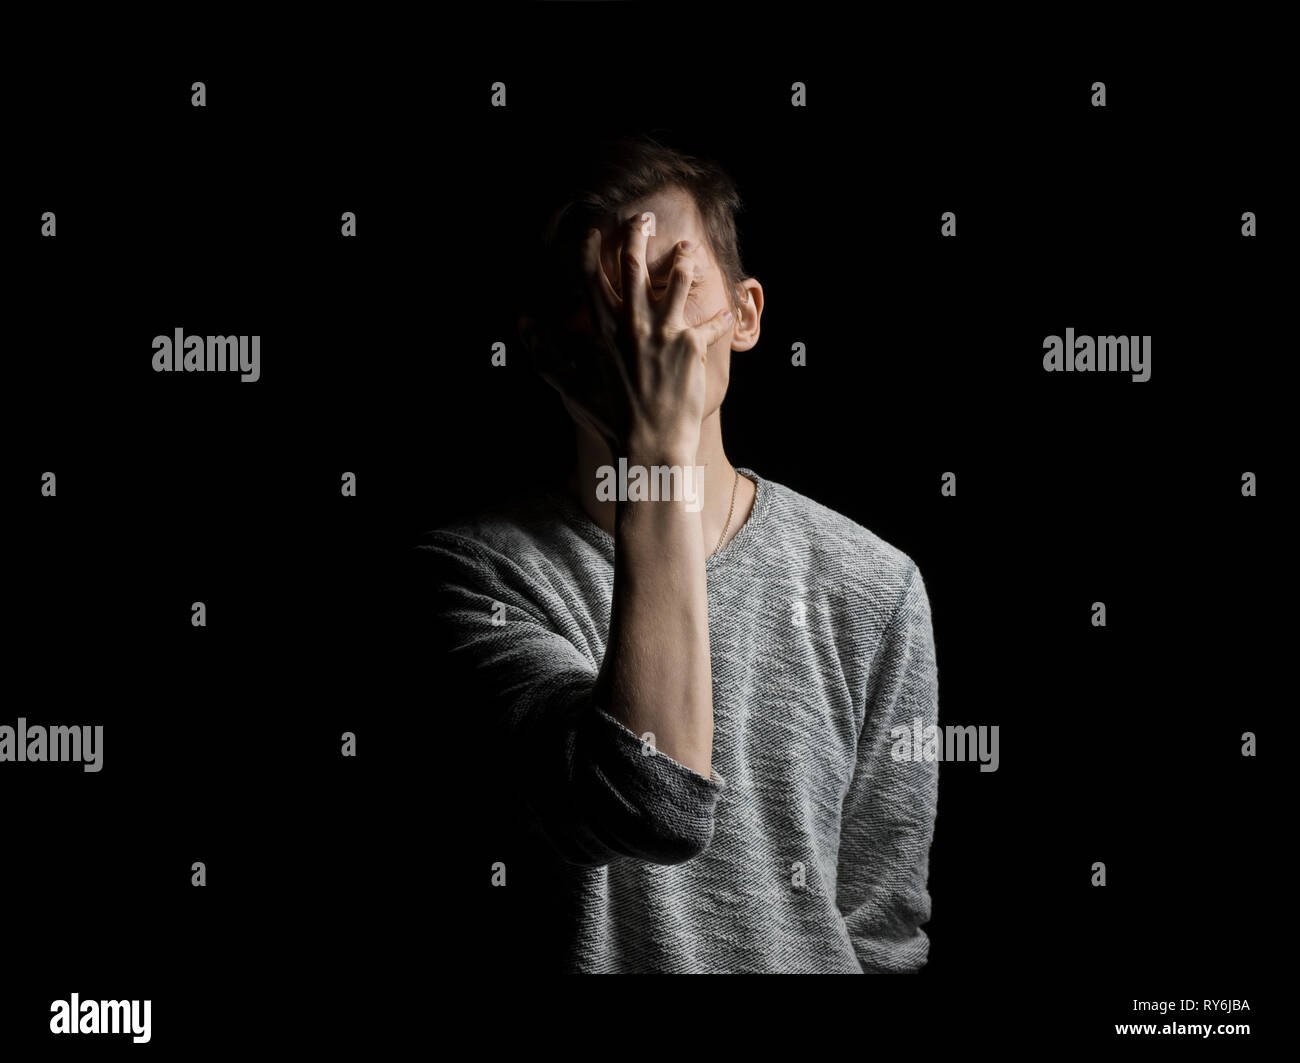 Man covering face with hand while standing against black background - Stock Image